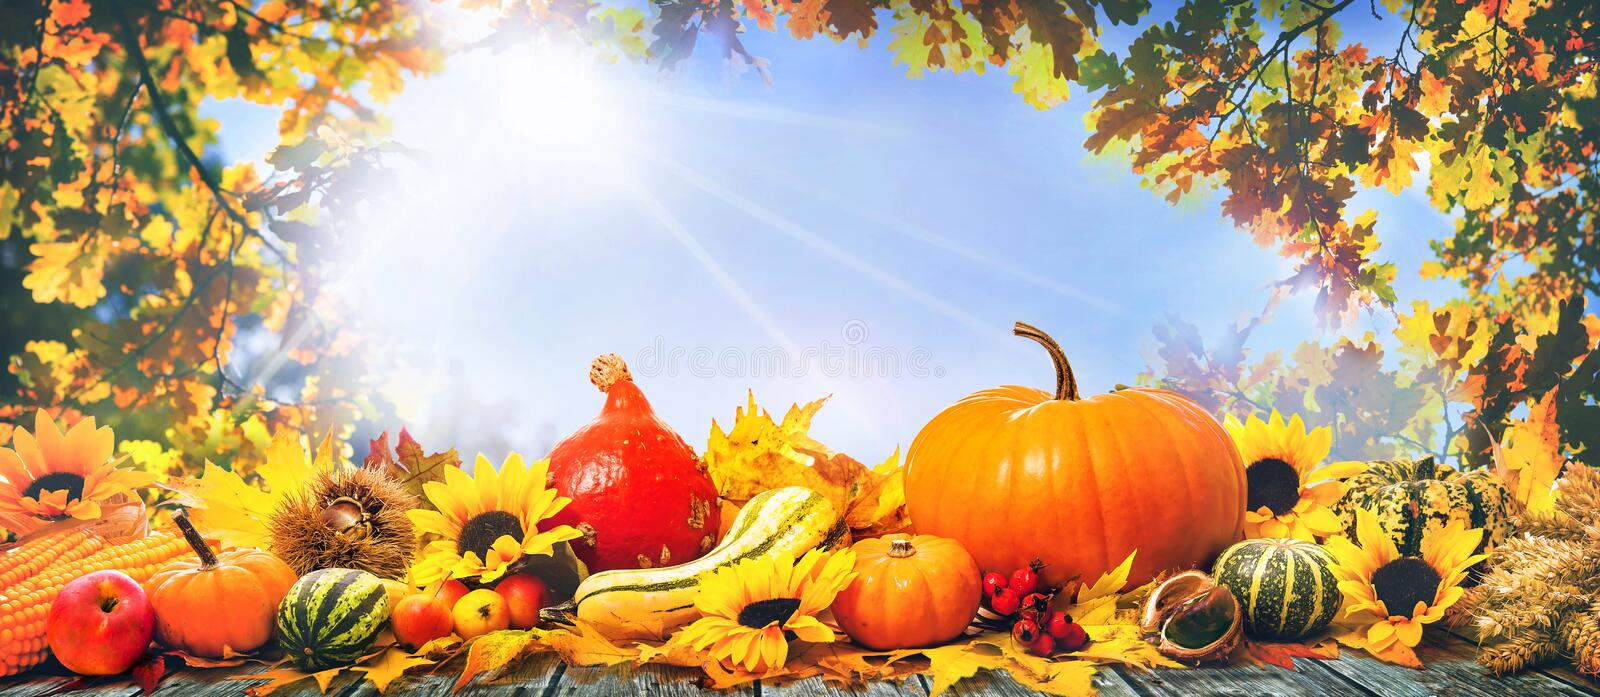 Thanksgiving pumpkins and falling leaves on rustic wooden plank stock photo